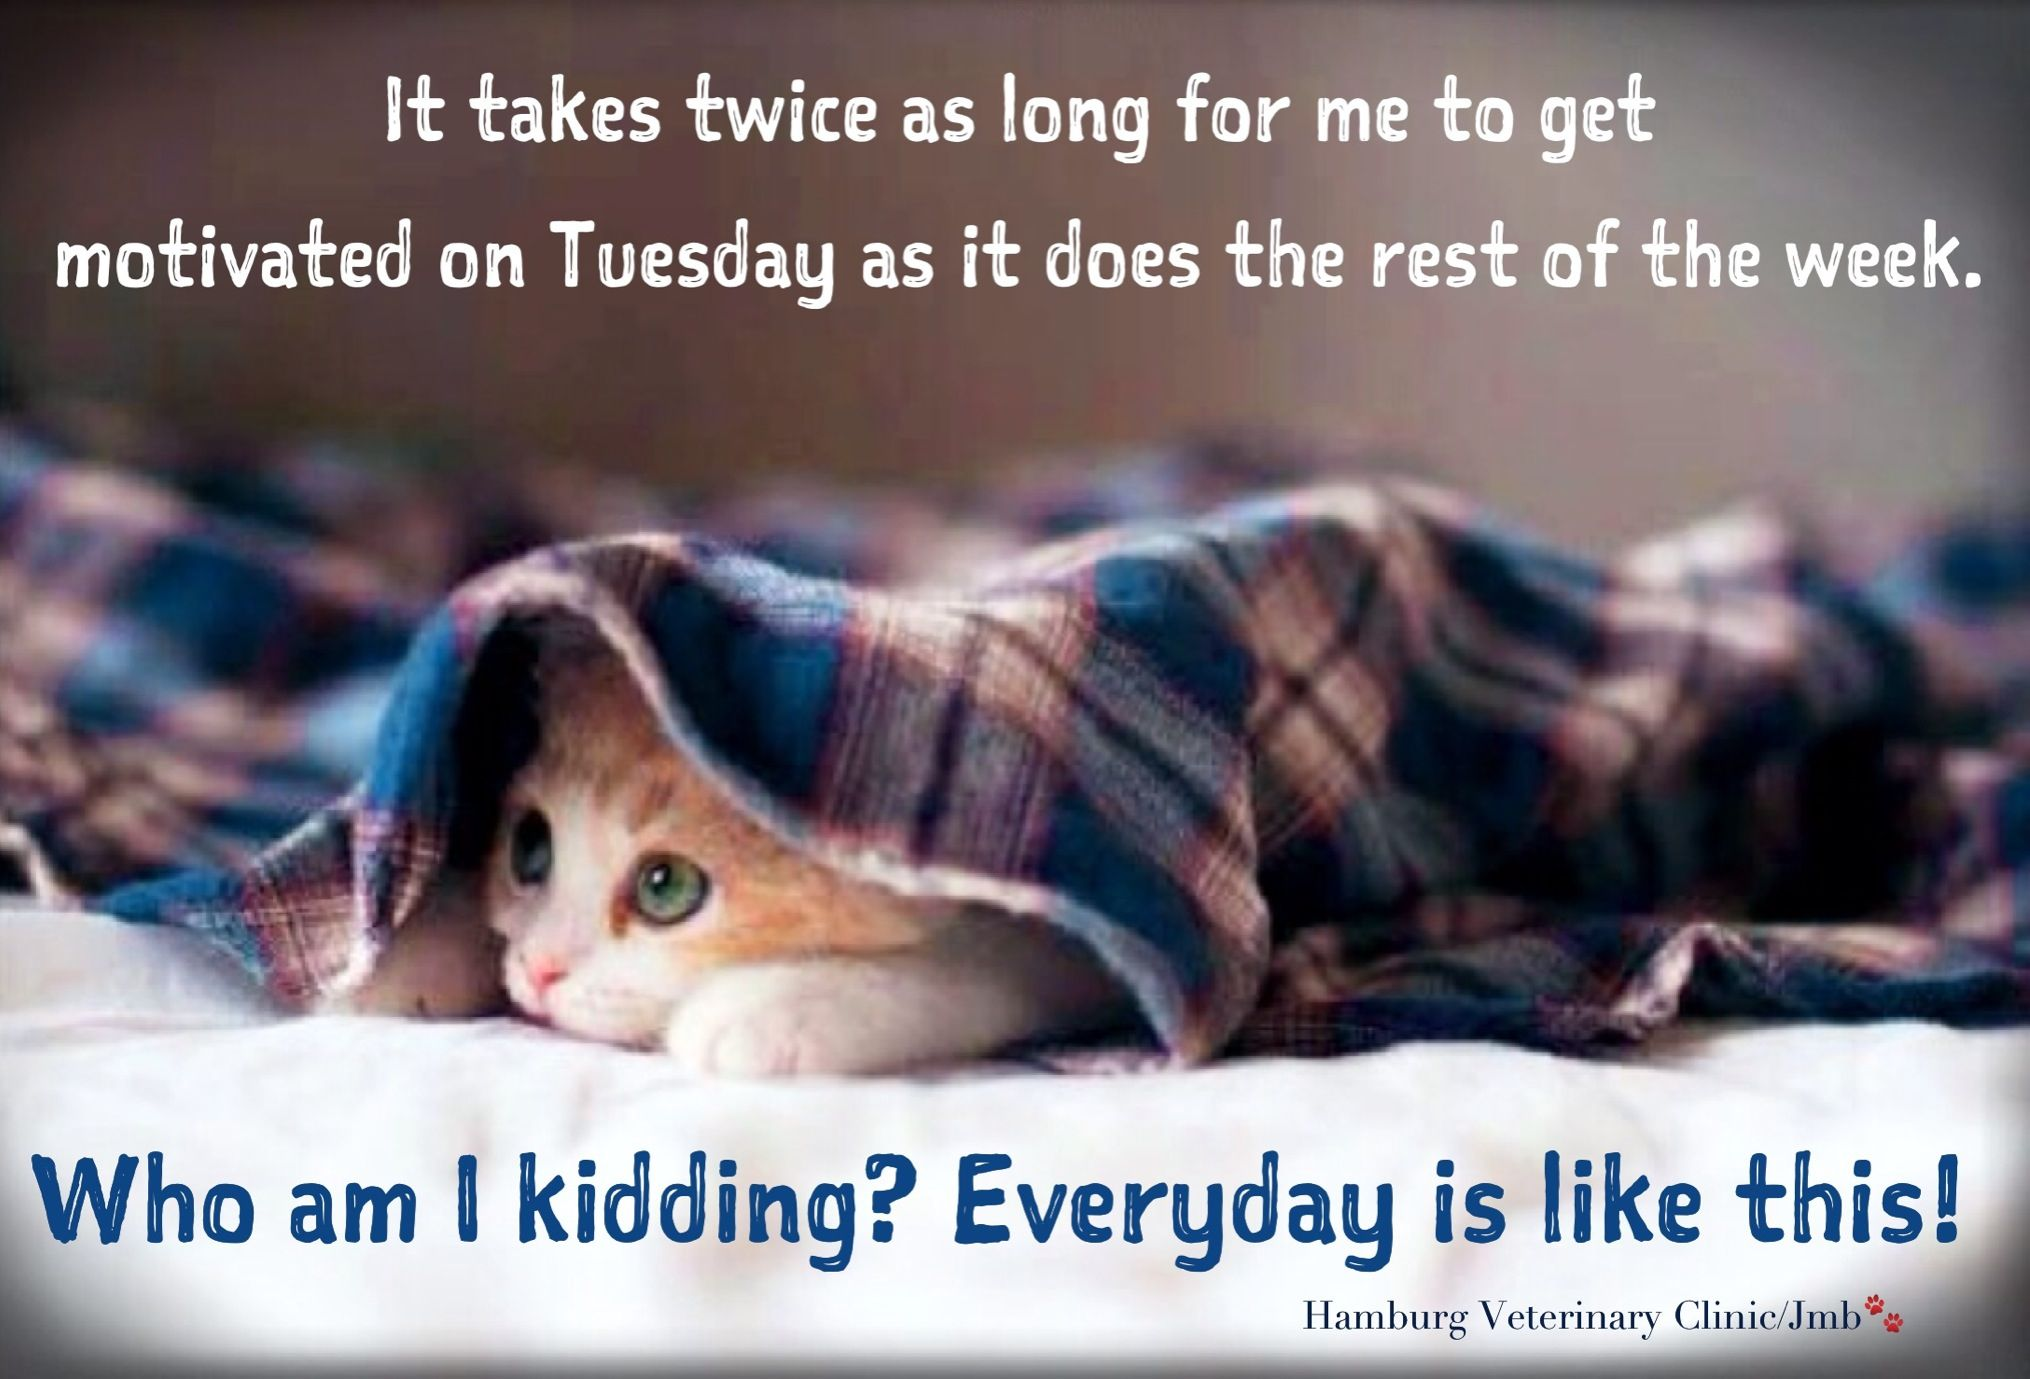 Tuesday Humor Animal Funny Cute Cat Work Week Exhausted Already Need Motivation For The Rest Of The Week It Tuesday Humor Funny Thoughts Life Humor